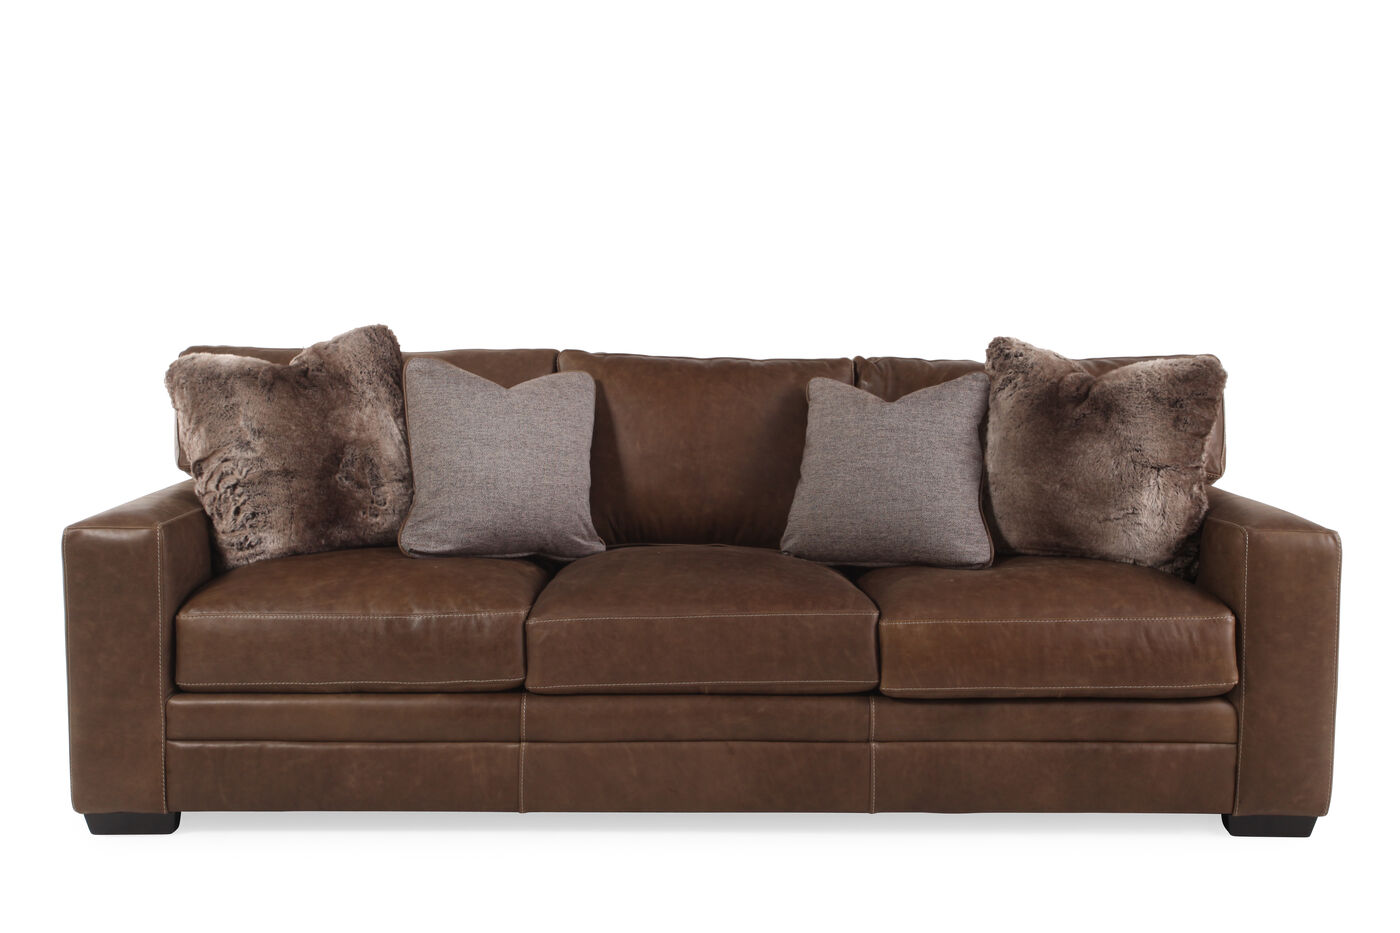 Low Profile Leather 98 Quot Sofa In Saddle Brown Mathis